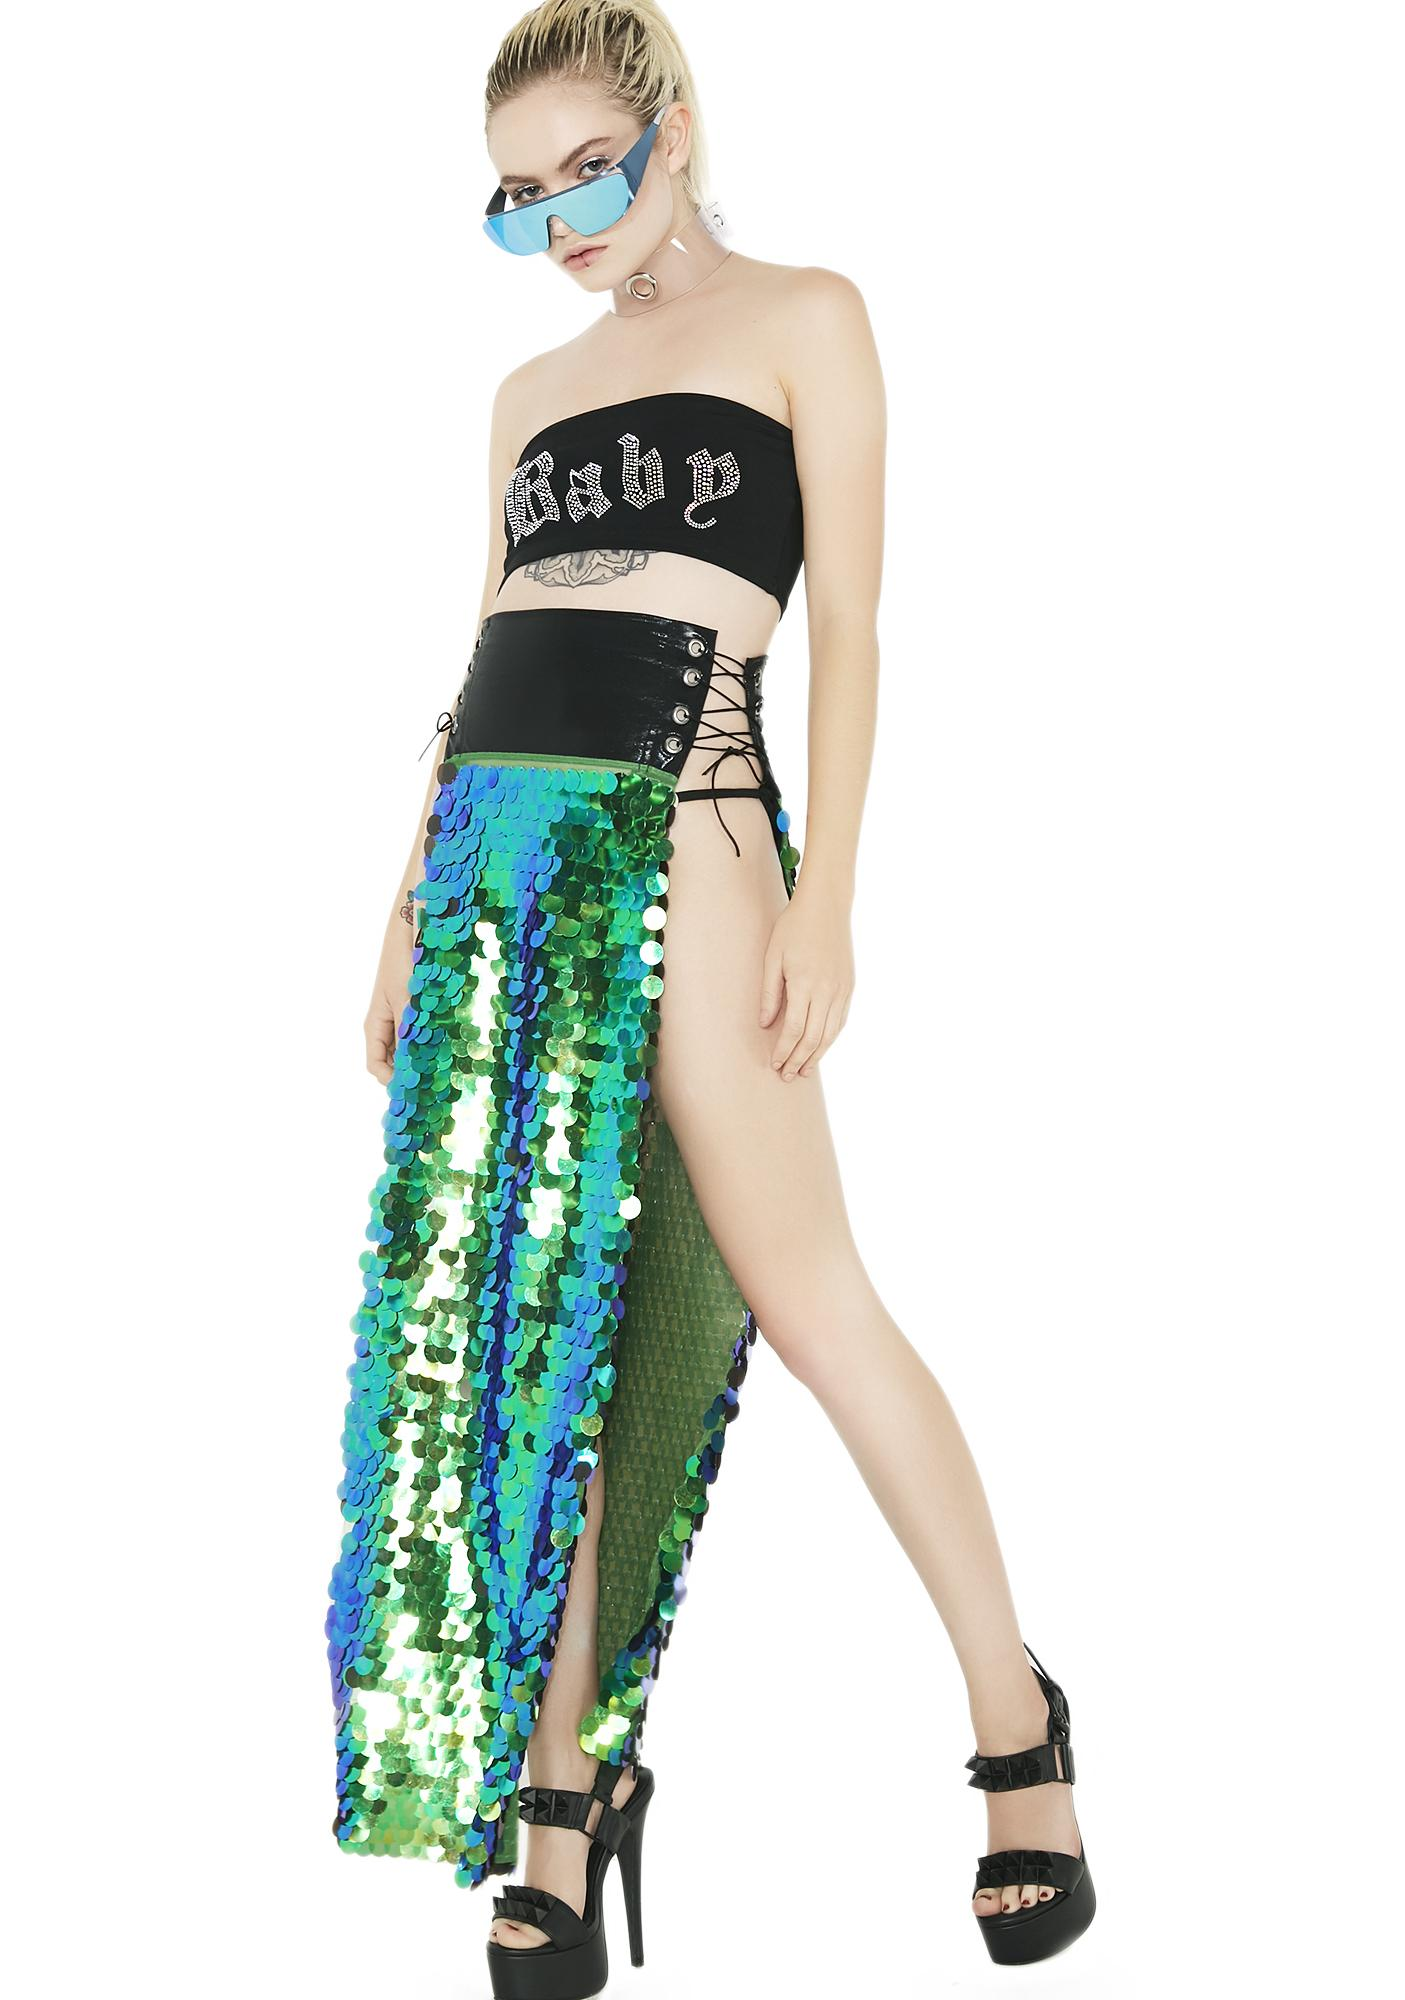 The Lyte Couture Gypsy Mermaid Panel Maxi Skirt